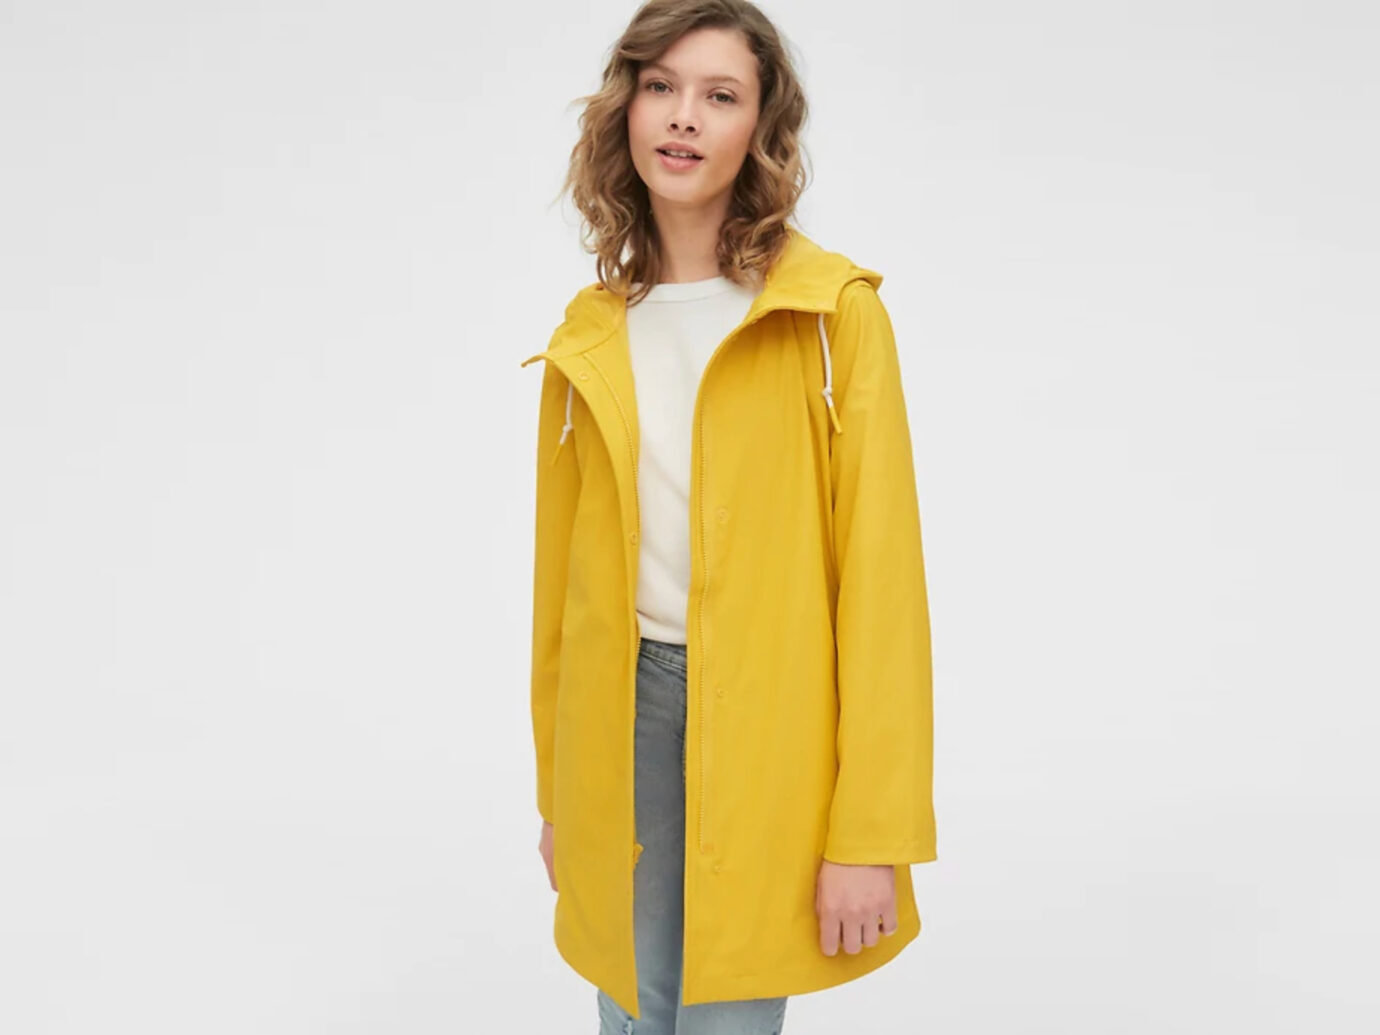 Gap Upcycled Raincoat